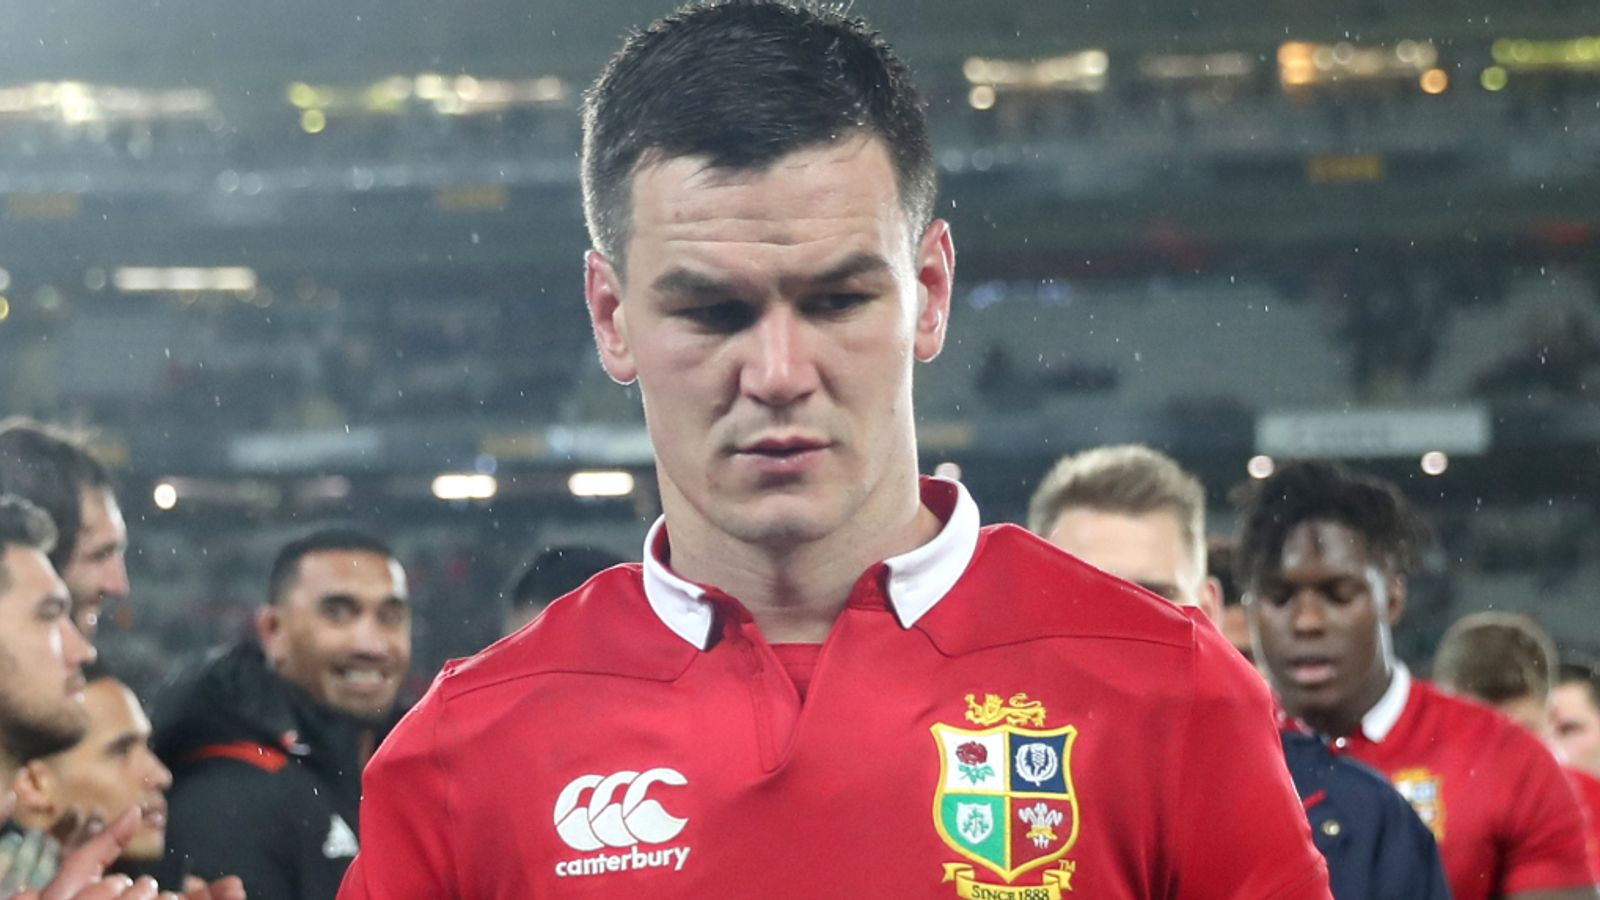 British Irish Lions: Johnny Sexton missed out on Warren Gatland's squad due to injury history, says Tommy Bowe